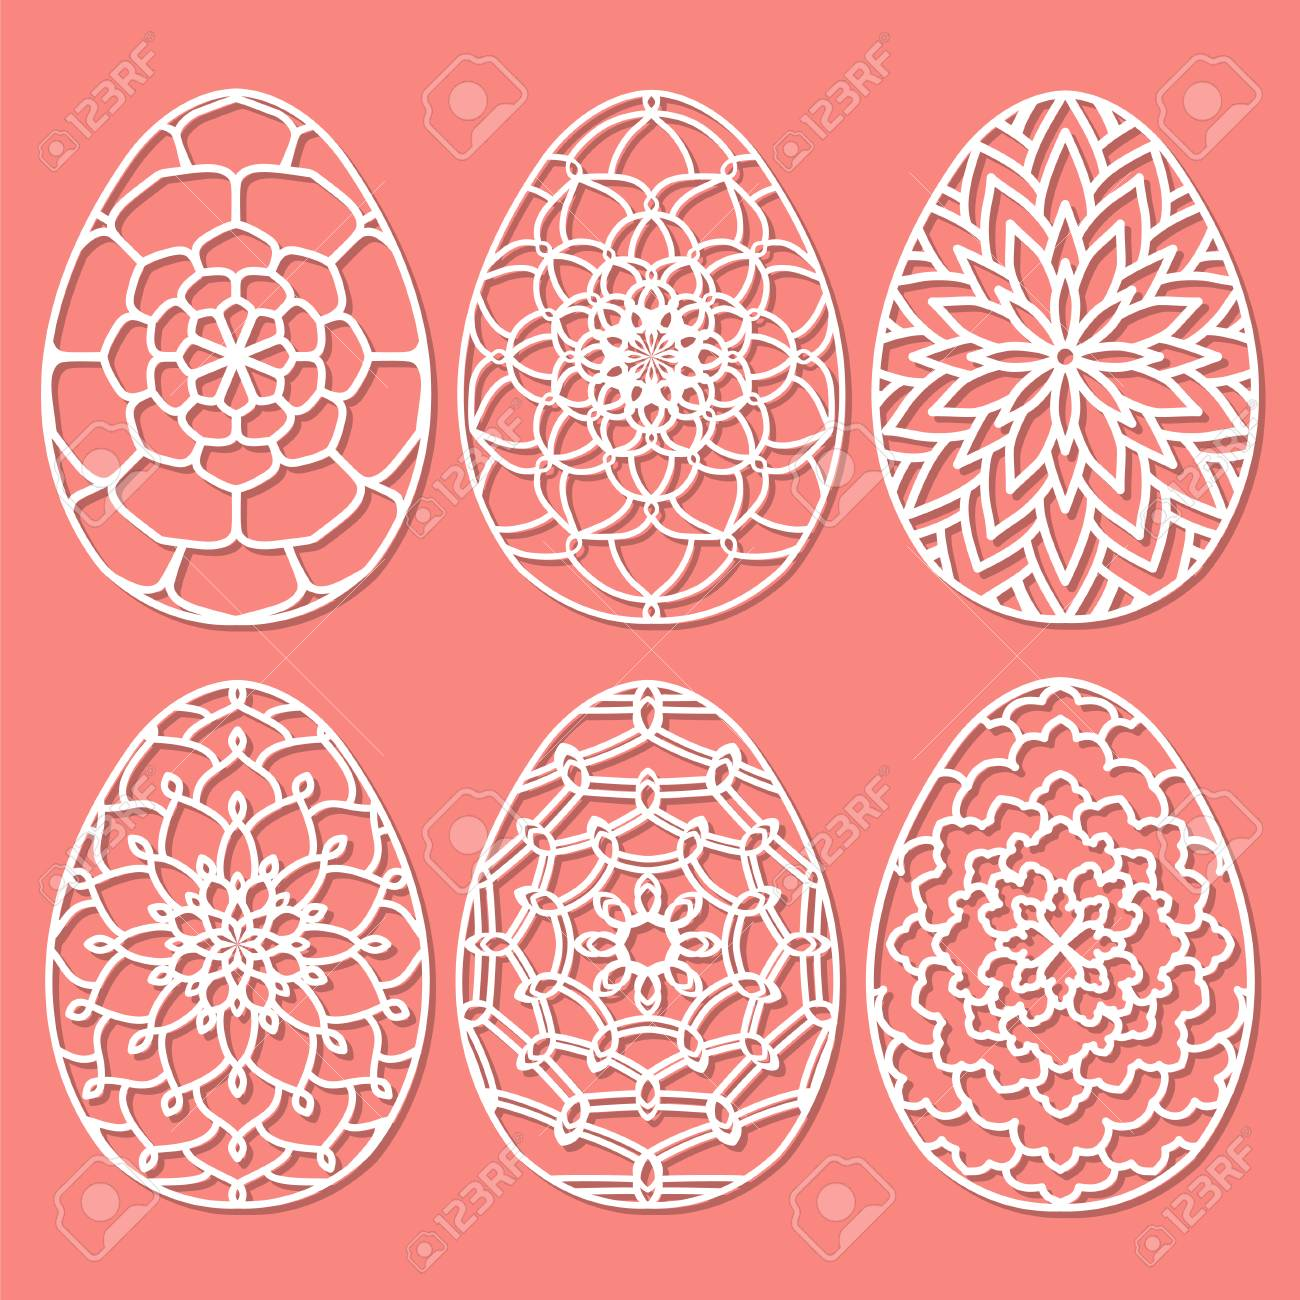 Set Of Vector Stencil Lacy Easter Egg With Carved Openwork Pattern